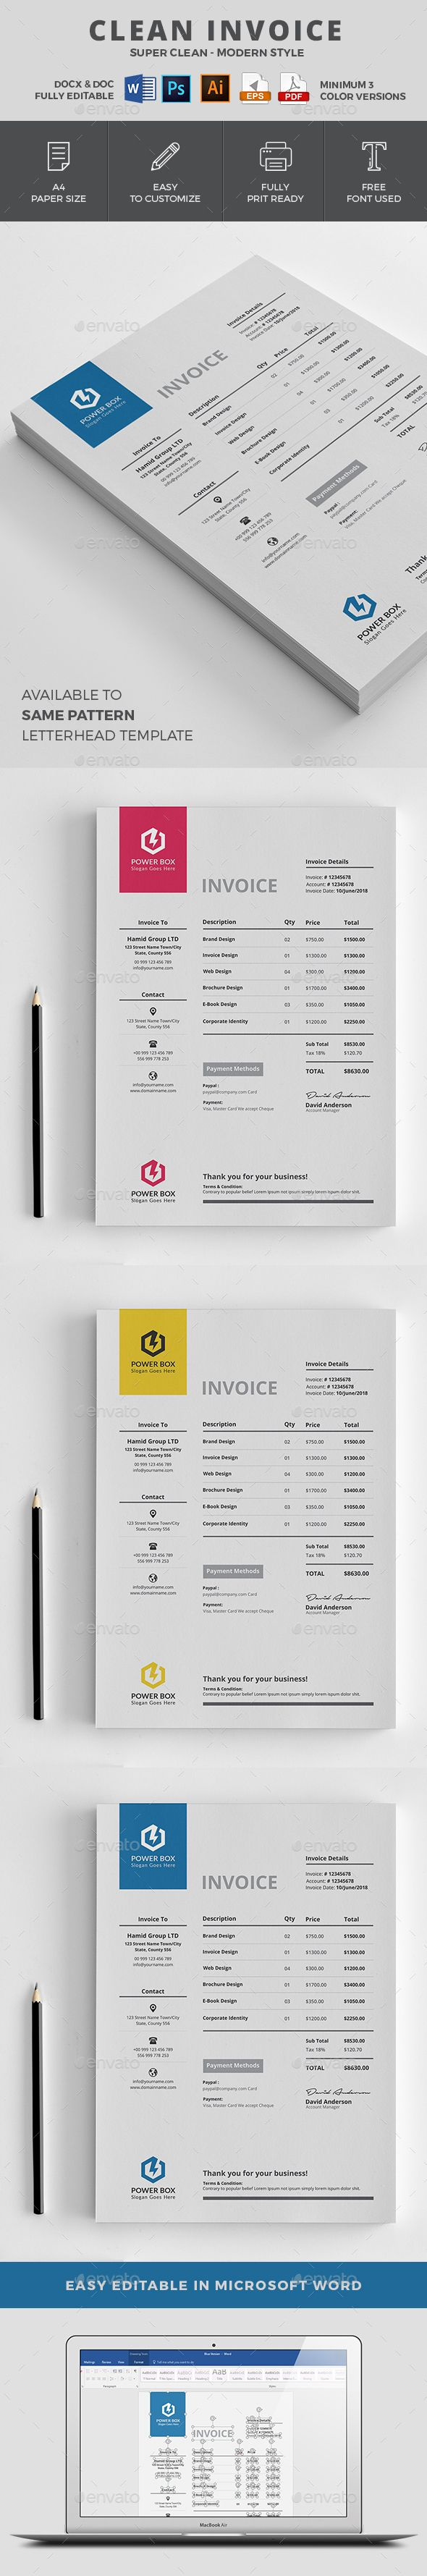 #Invoice - Proposals & Invoices Stationery - Minimal Invoice Template | 5 color variations I Available in- MS Word, PSD, Ai, Eps & Pdf Format I Download: https://graphicriver.net/item/invoice/19253887?ref=jpixel55